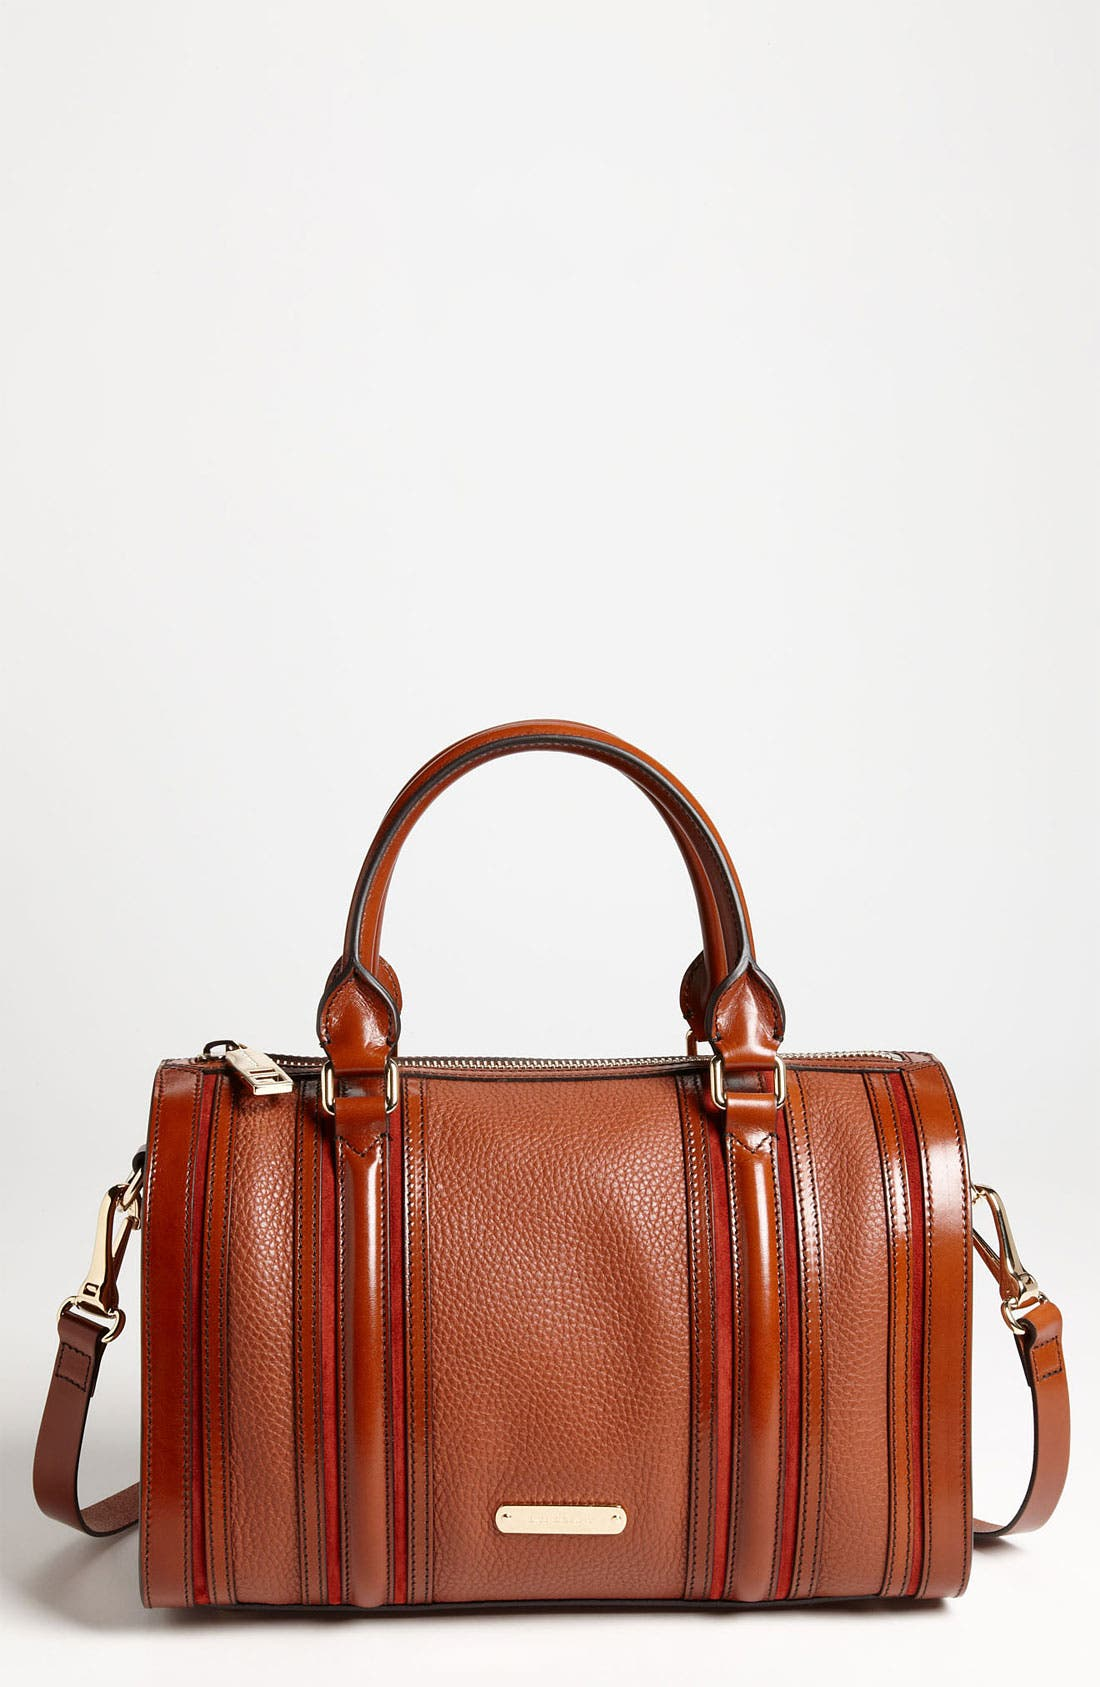 Main Image - Burberry Leather Satchel